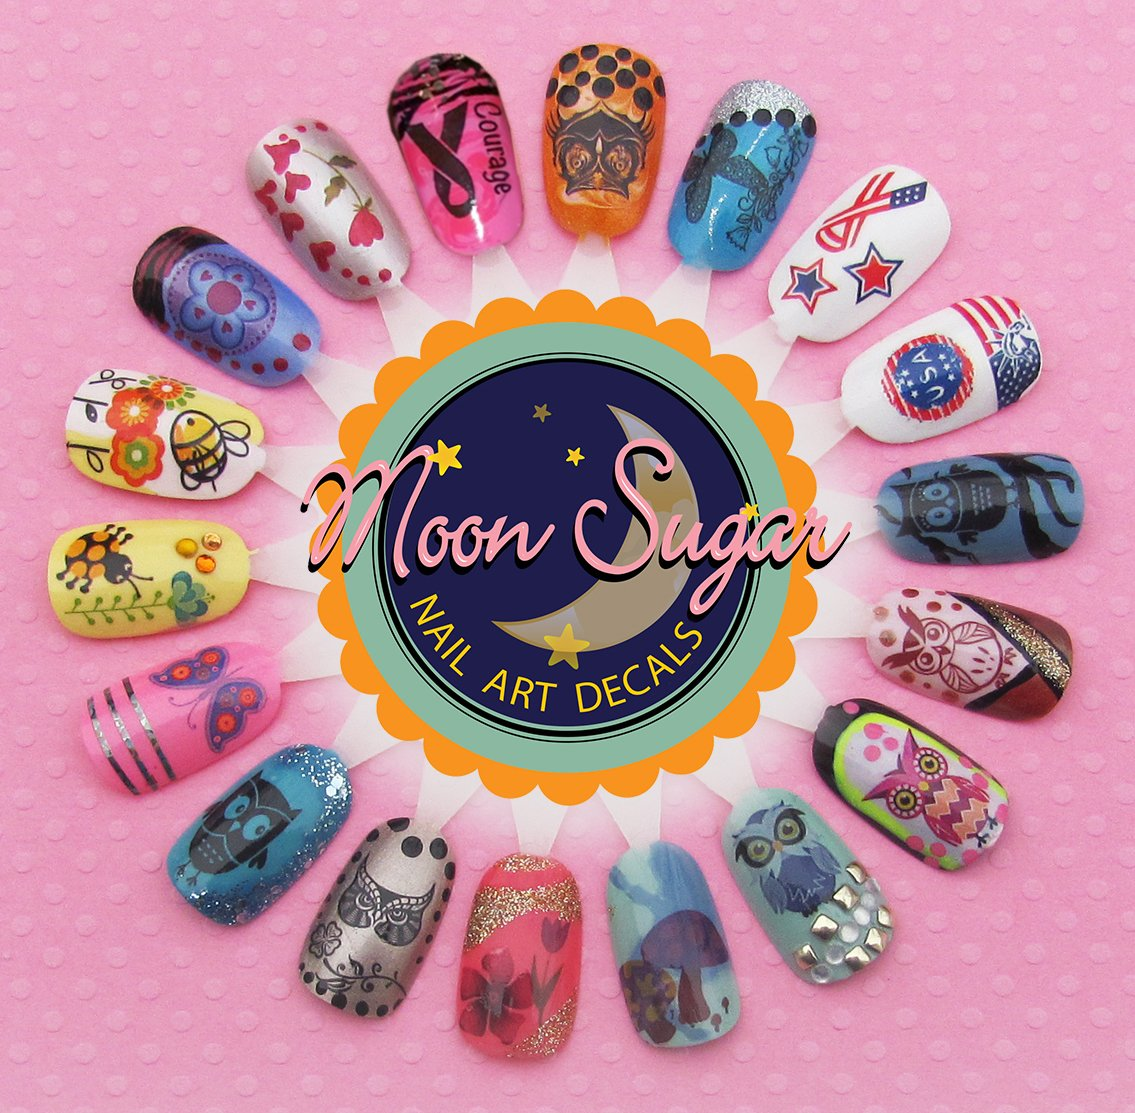 Amazon com las vegas casino assortment nail art waterslide decals salon quality beauty